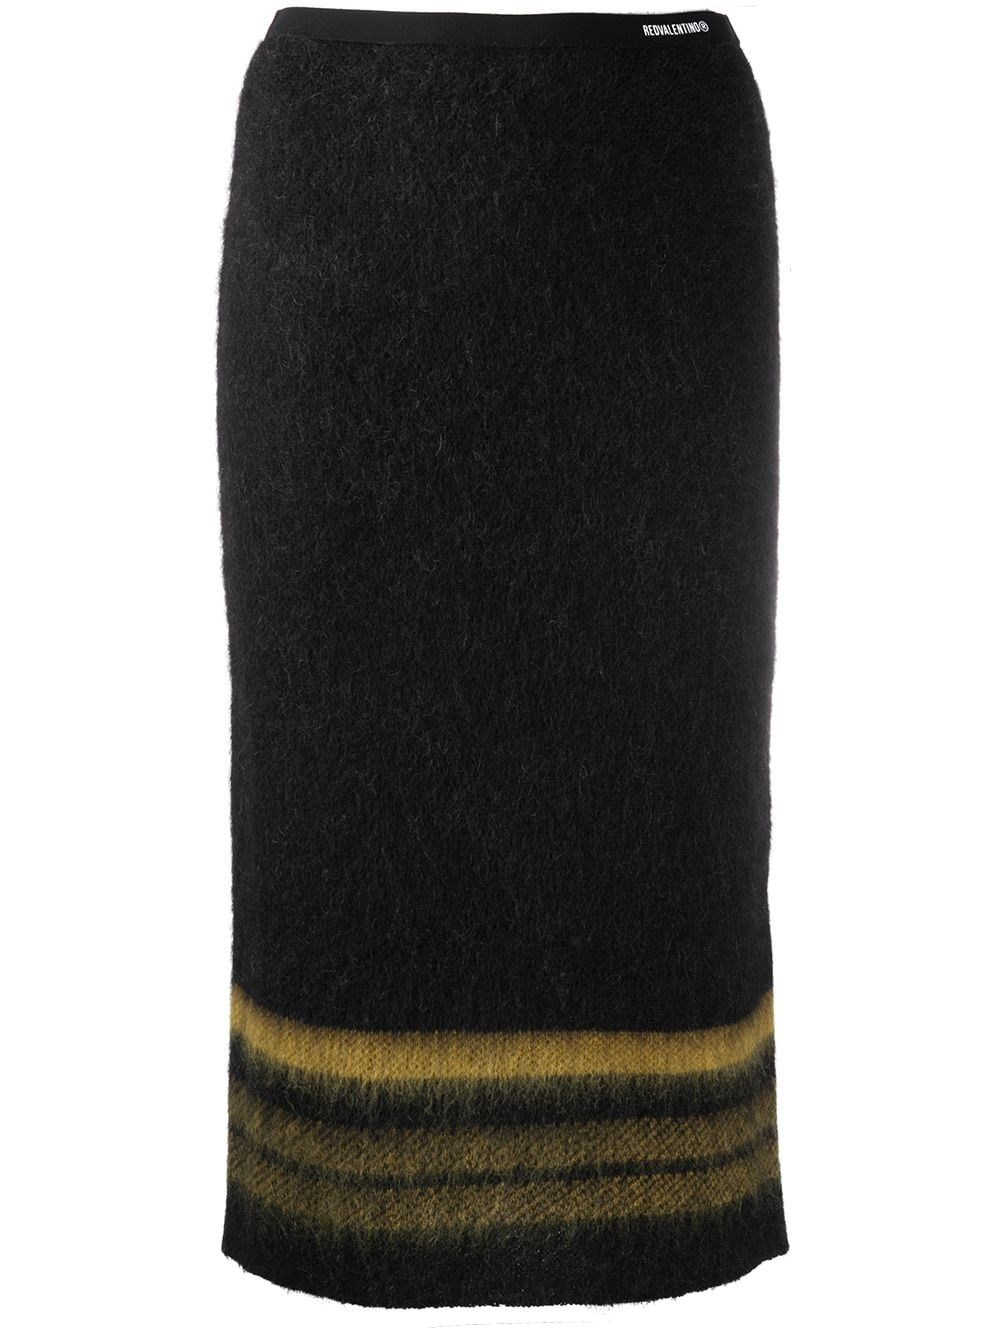 REDVALENTINO Mohair Knit Pencil Skirt